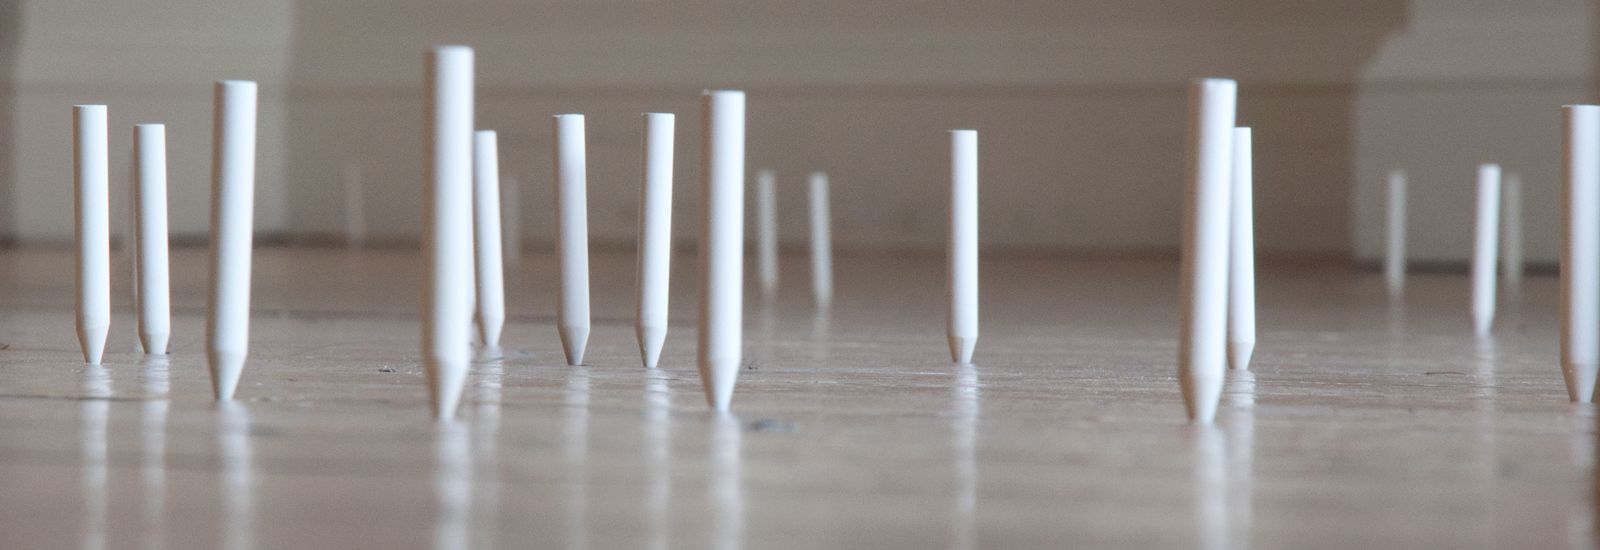 White cylinders on the floor as part of an artwork